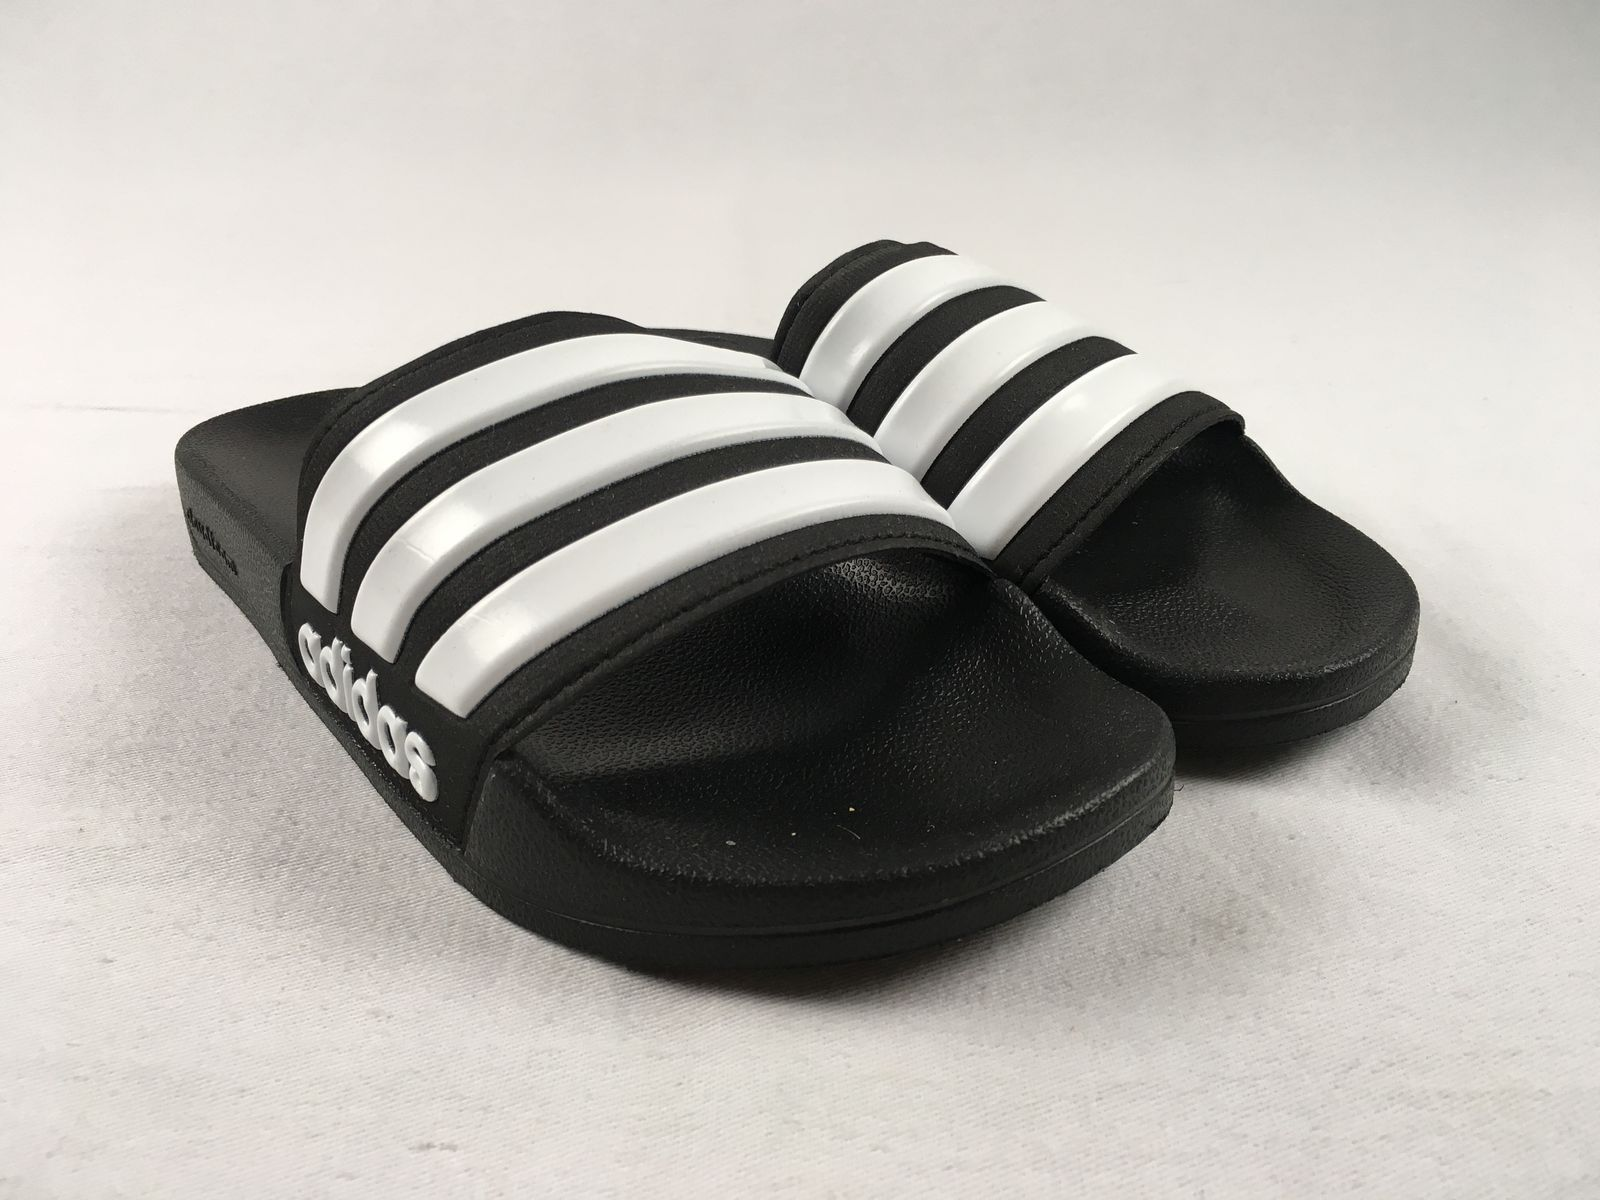 d1261a51cf1bd Details about NEW adidas adilette Shower - Black Sandals   Flip Flops  (Men s Multiple Sizes)